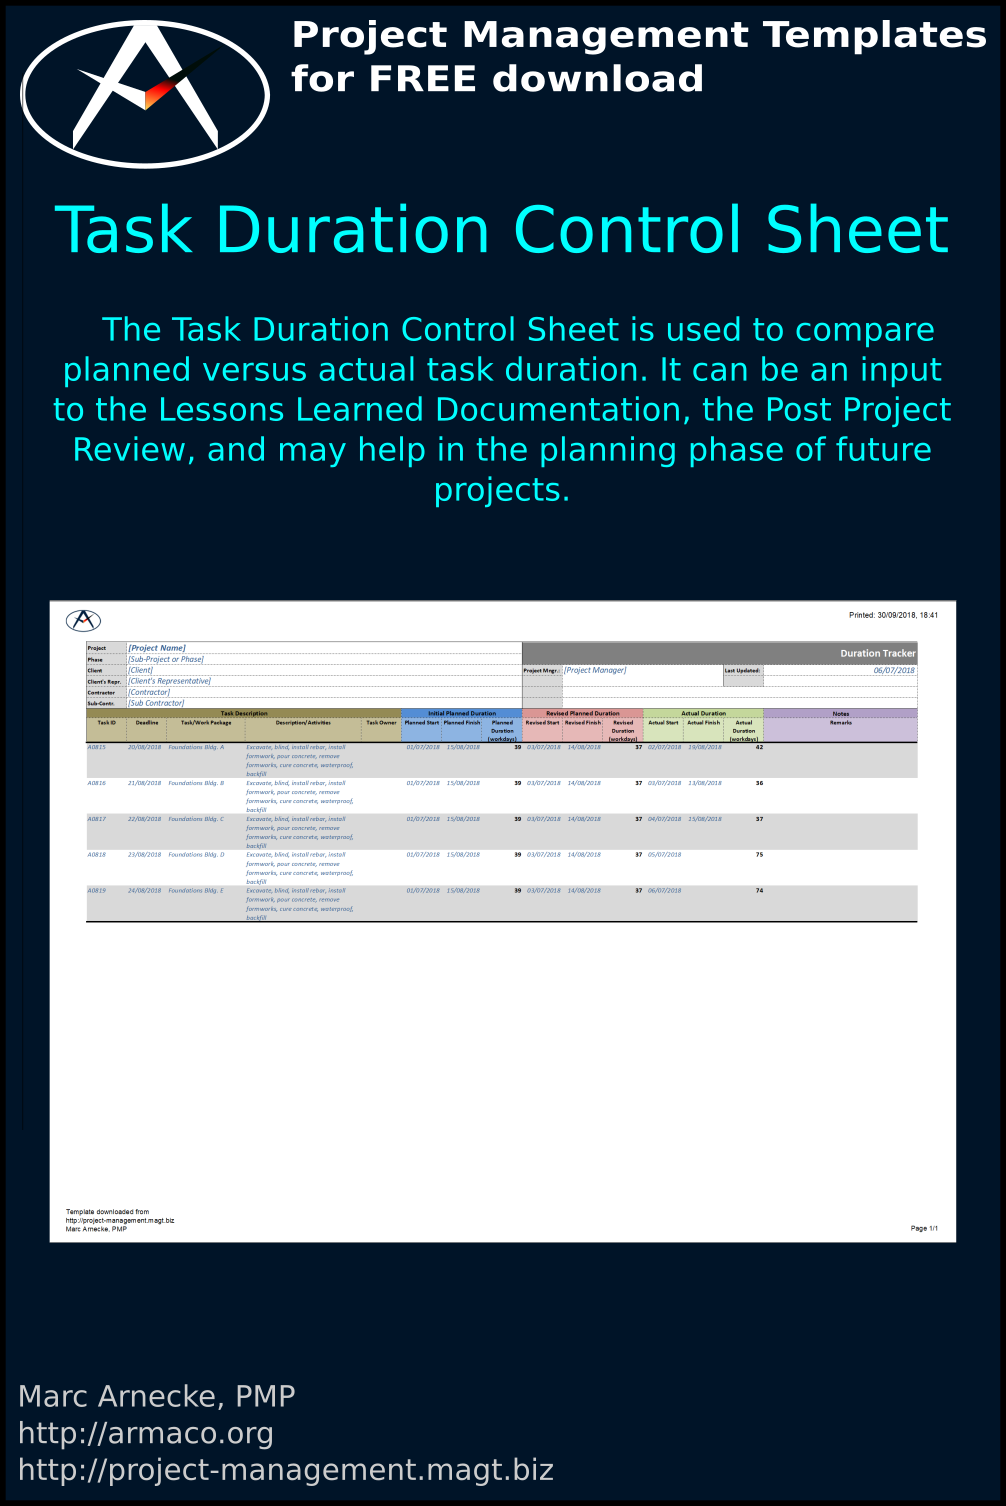 Task Duration Control Sheet Template